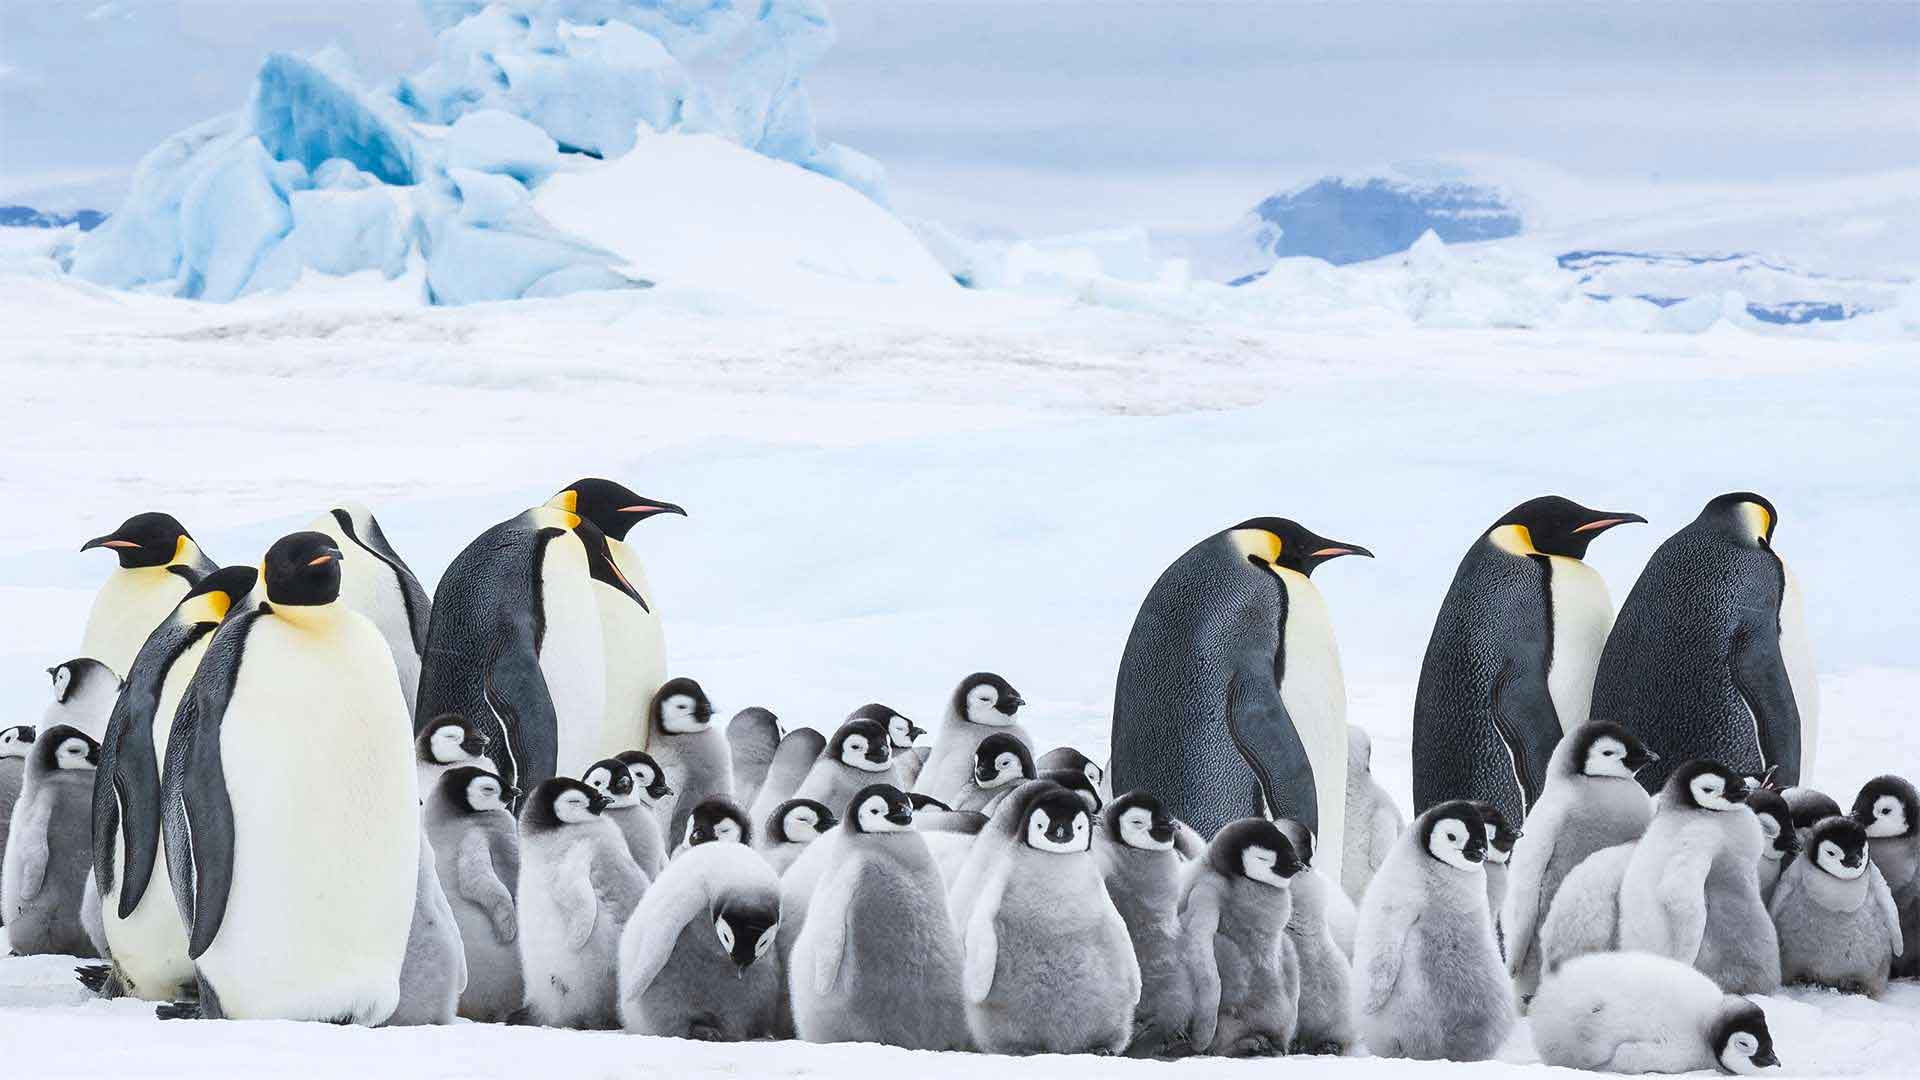 March of the Penguins 2' Takes a Step Back - The Heights